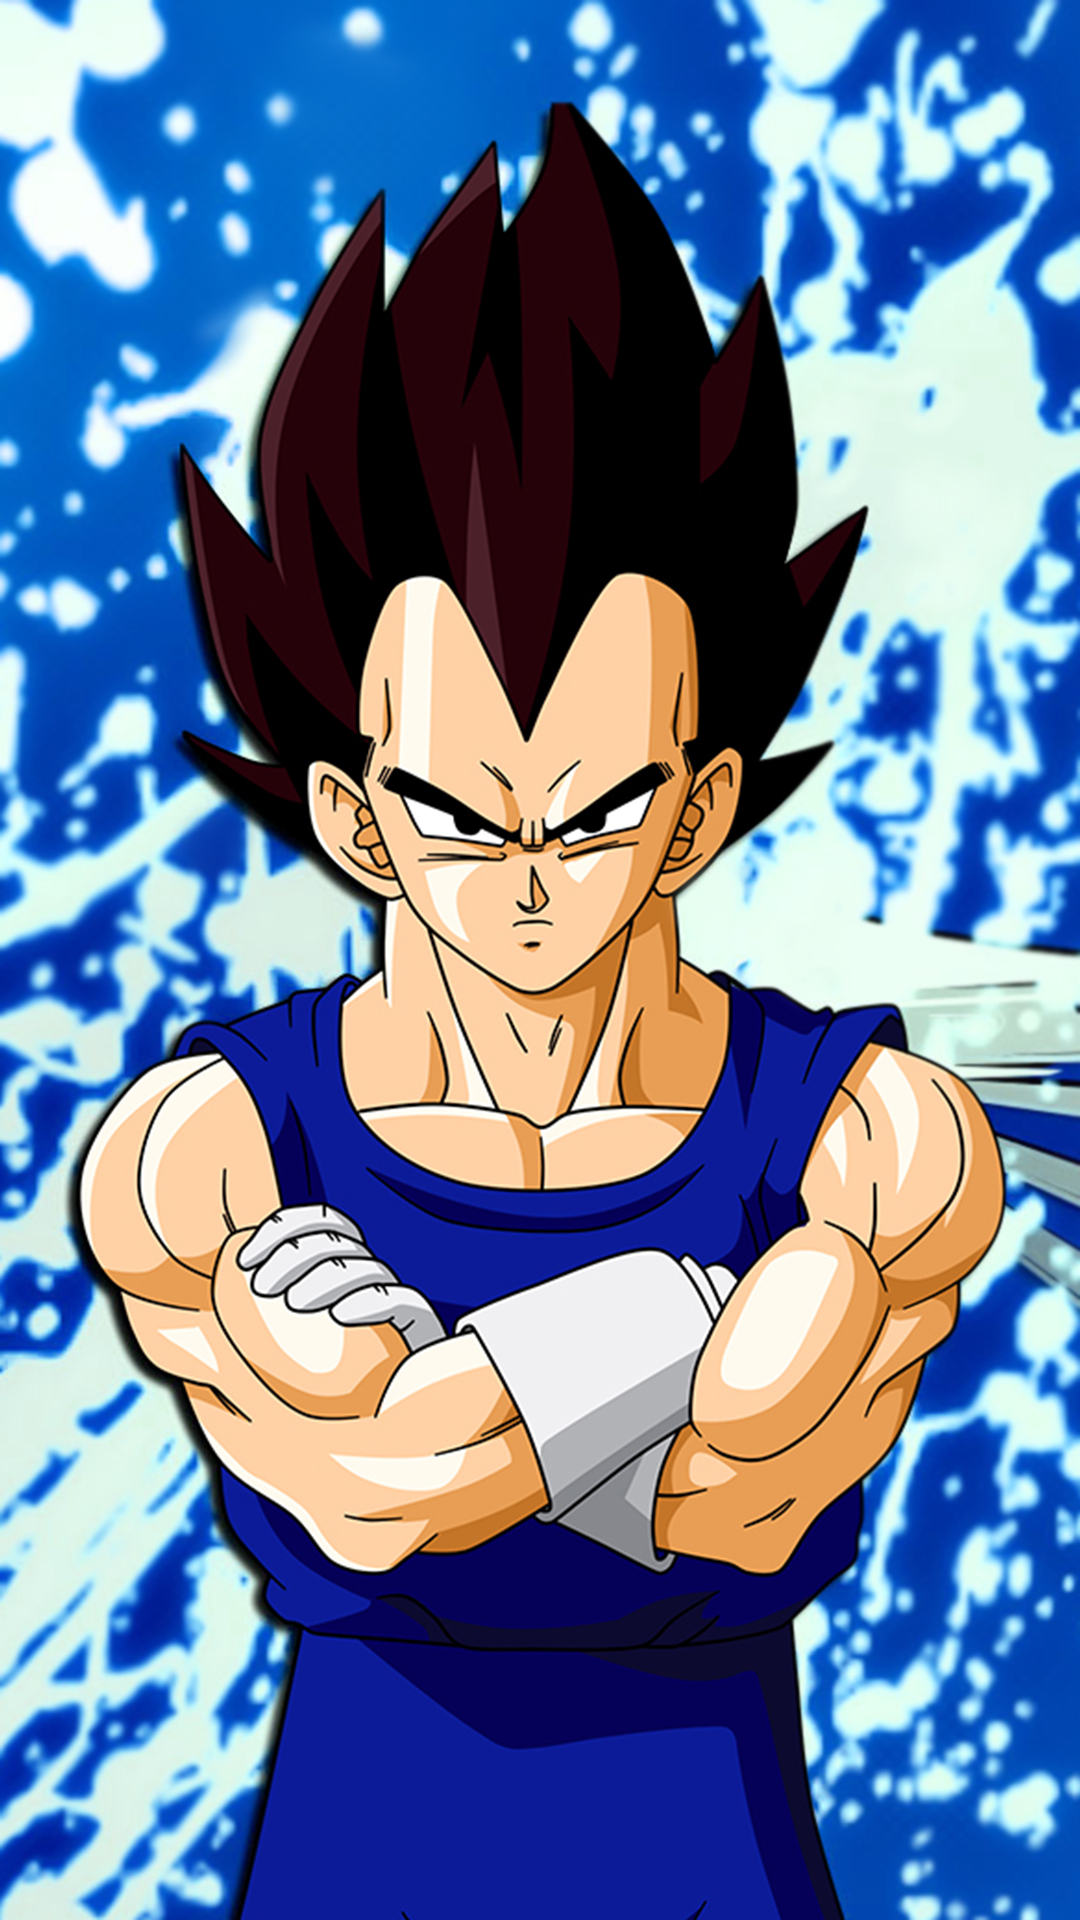 Vegeta Wallpaper 4k Android 1080x1920 Wallpaper Teahub Io